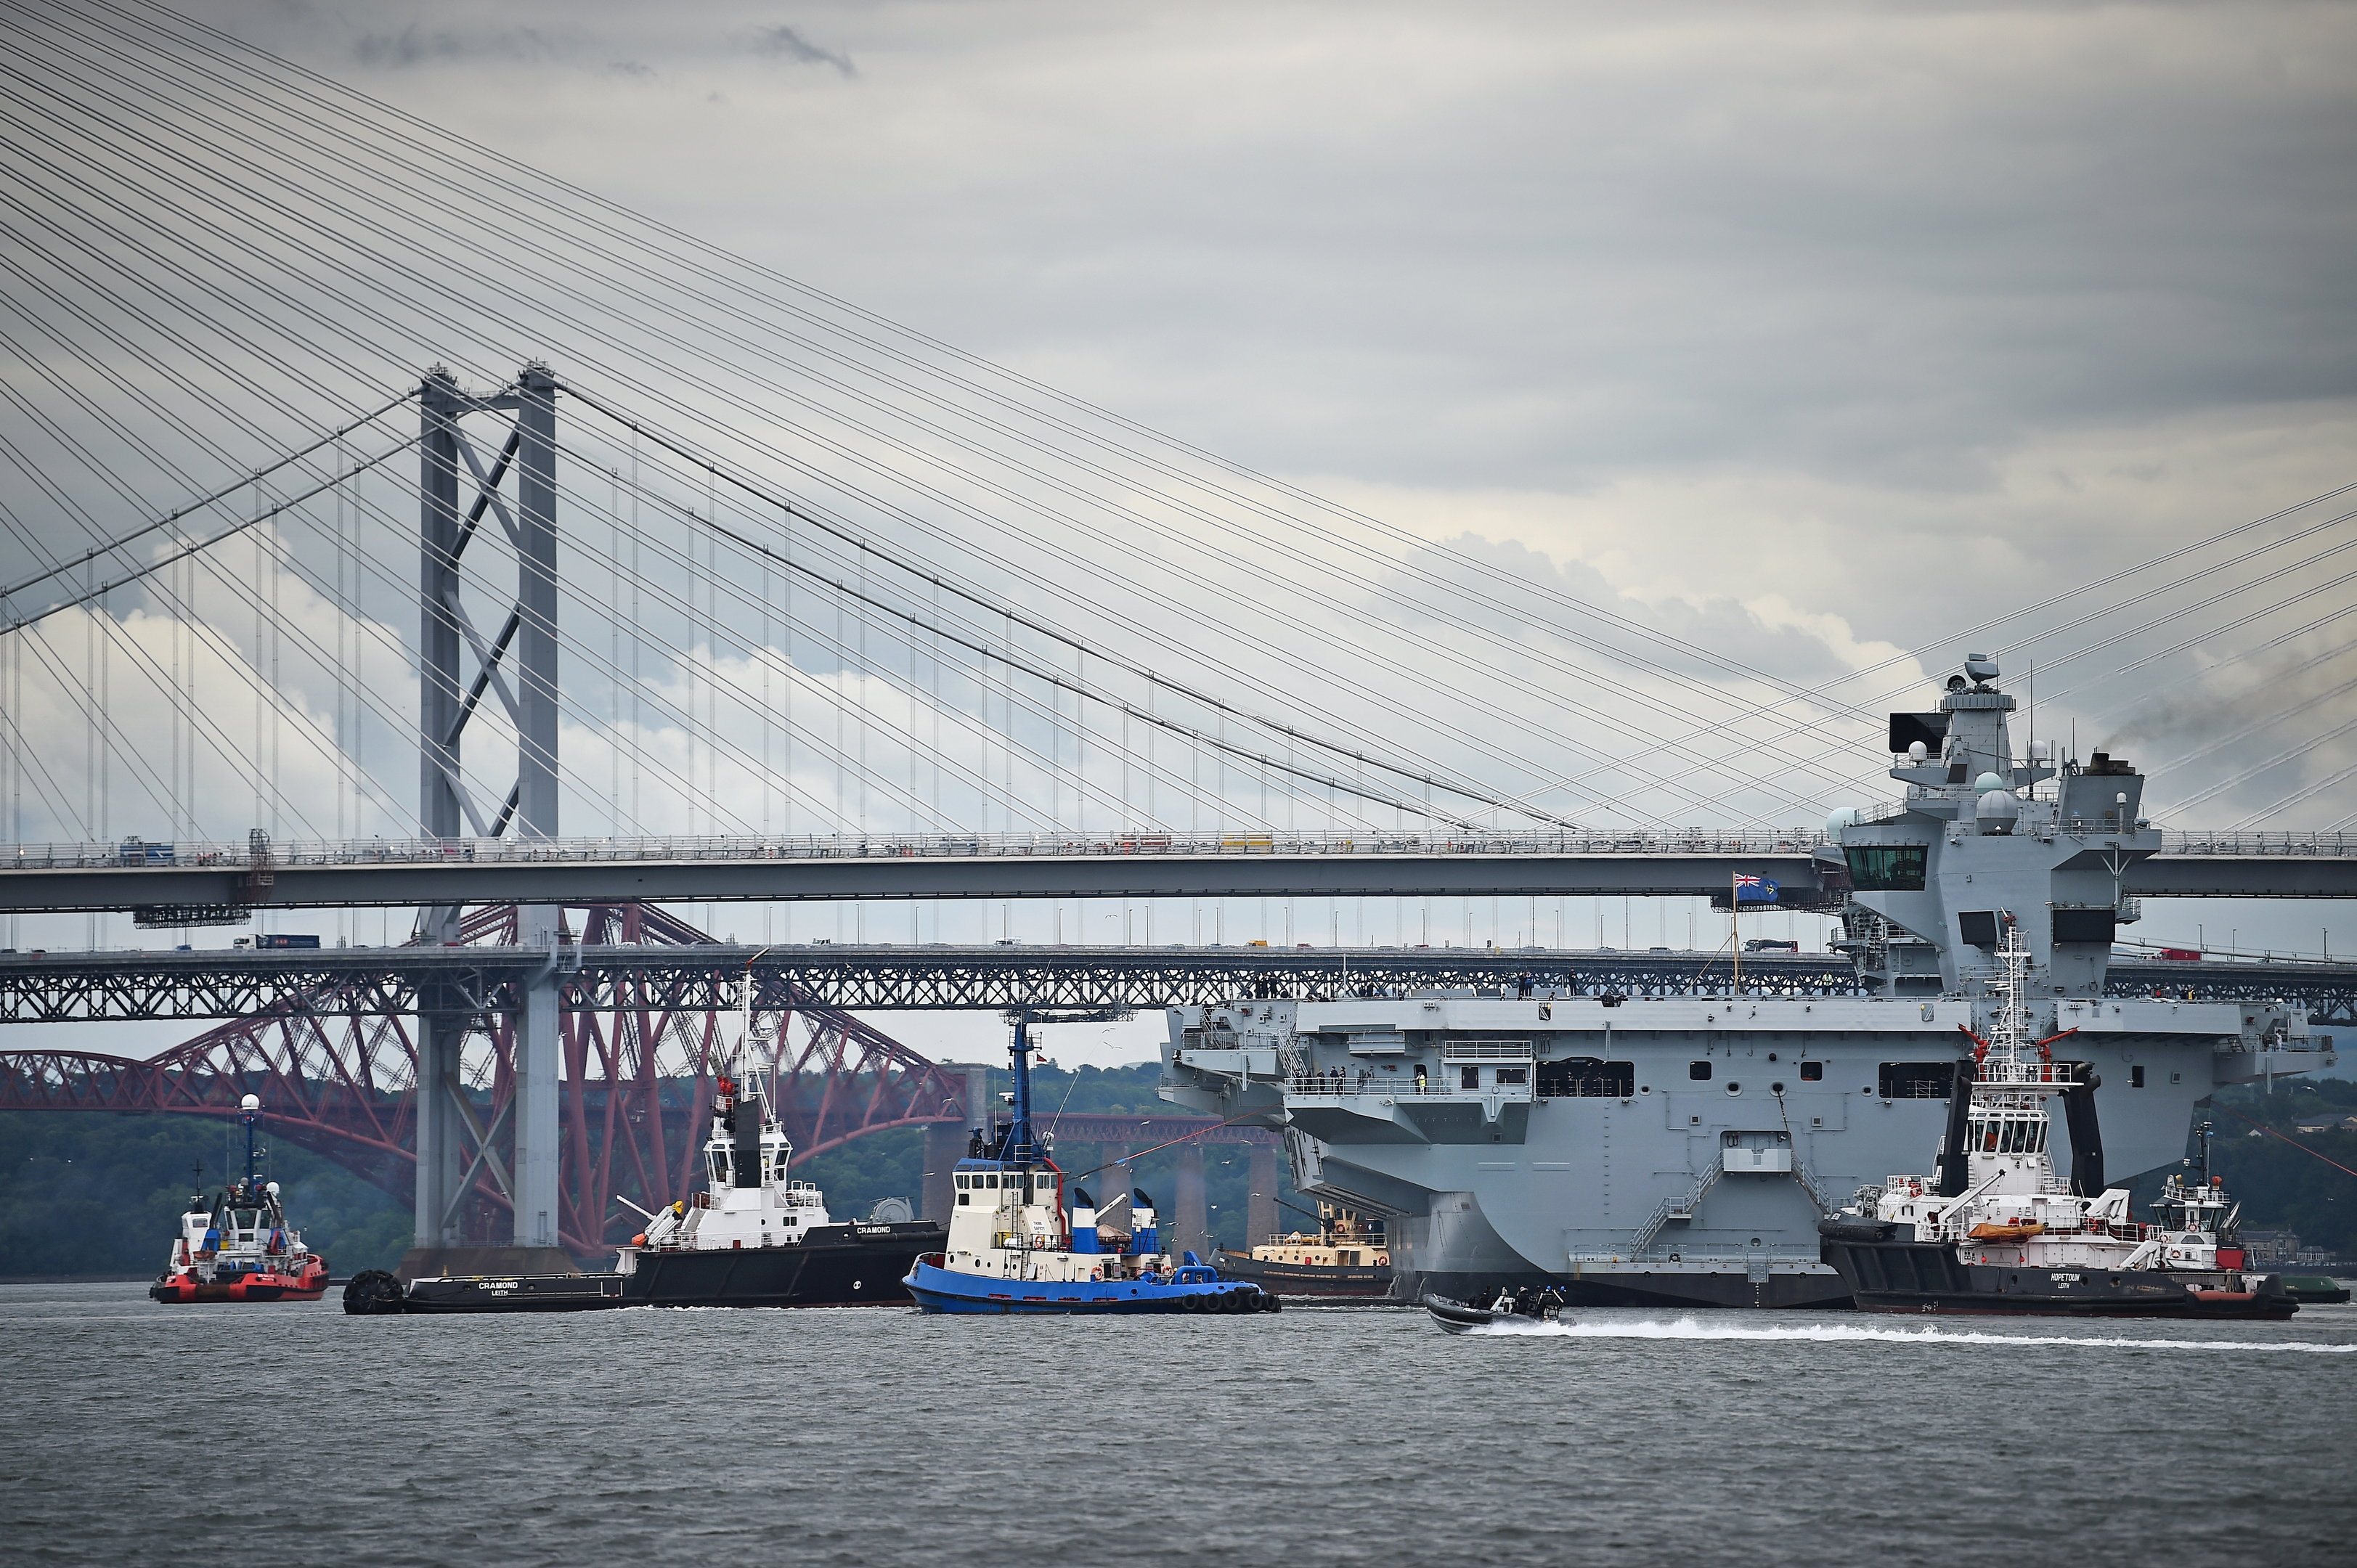 HMS Queen Elizabeth leaves Rosyth for sea trials